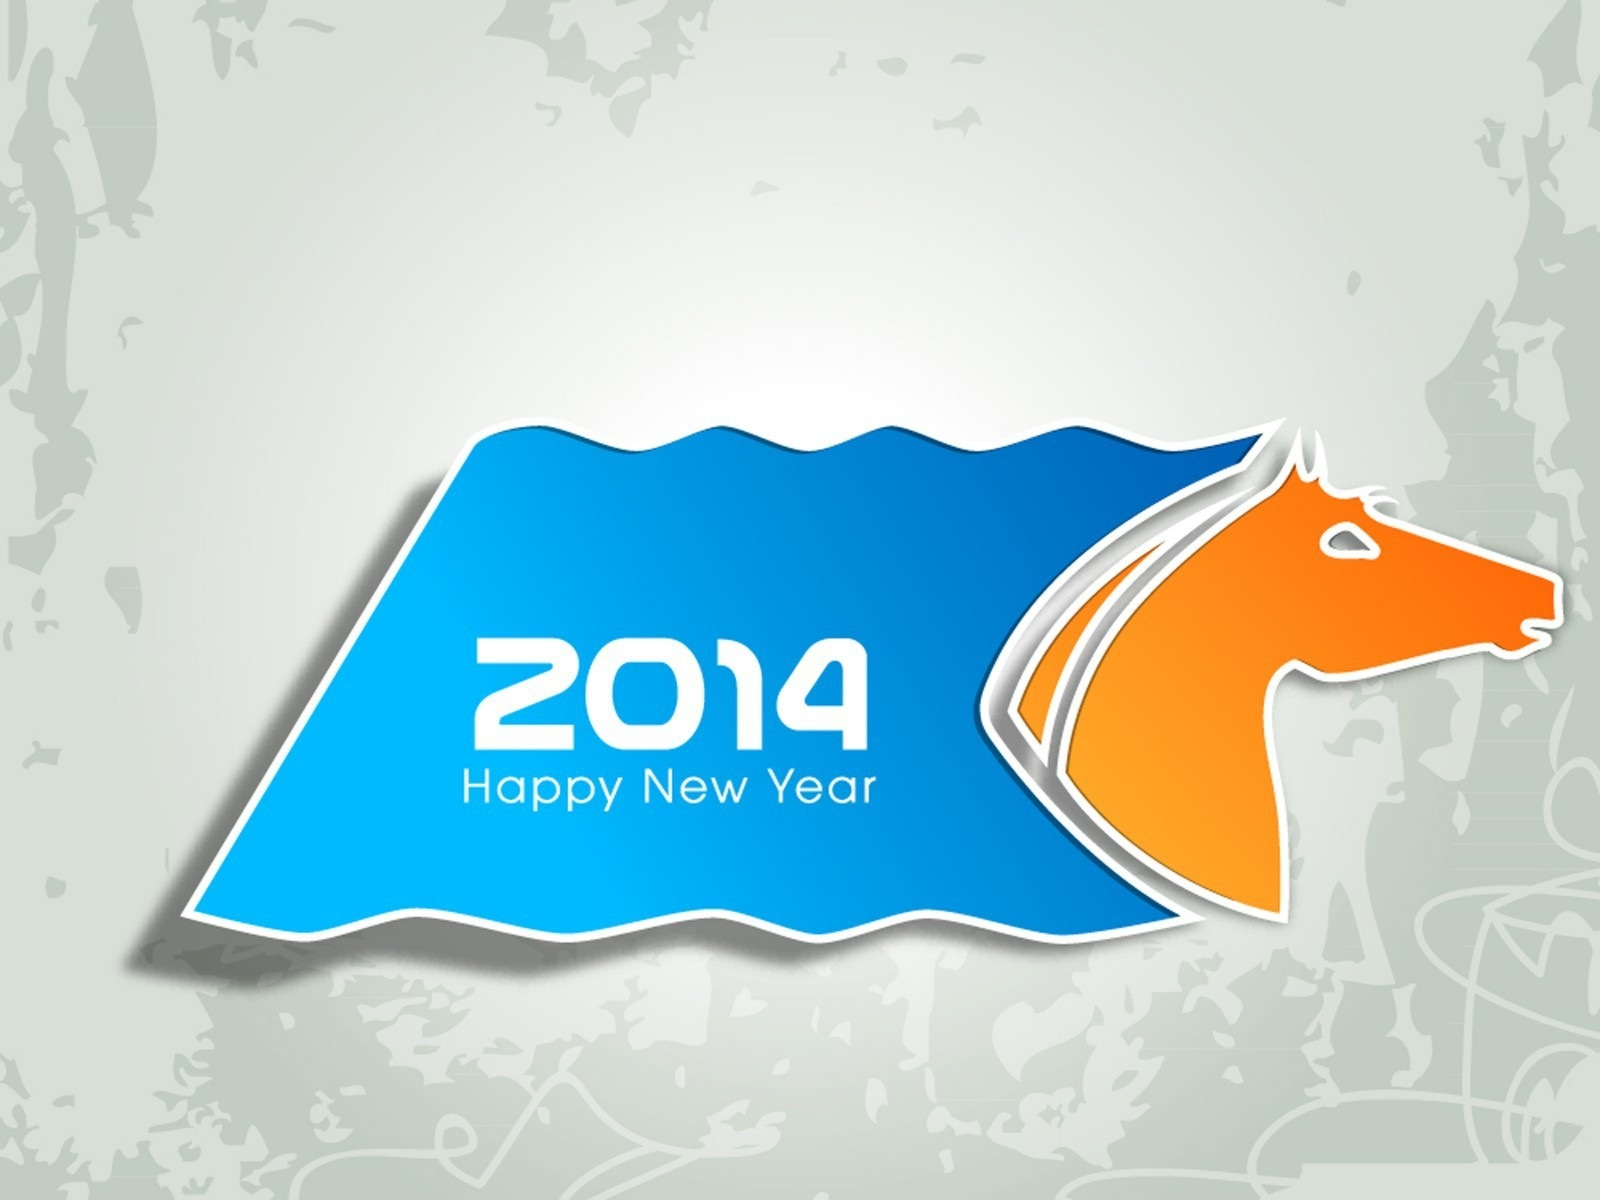 Happy New Year 2014 Wallpaper-1600x1200